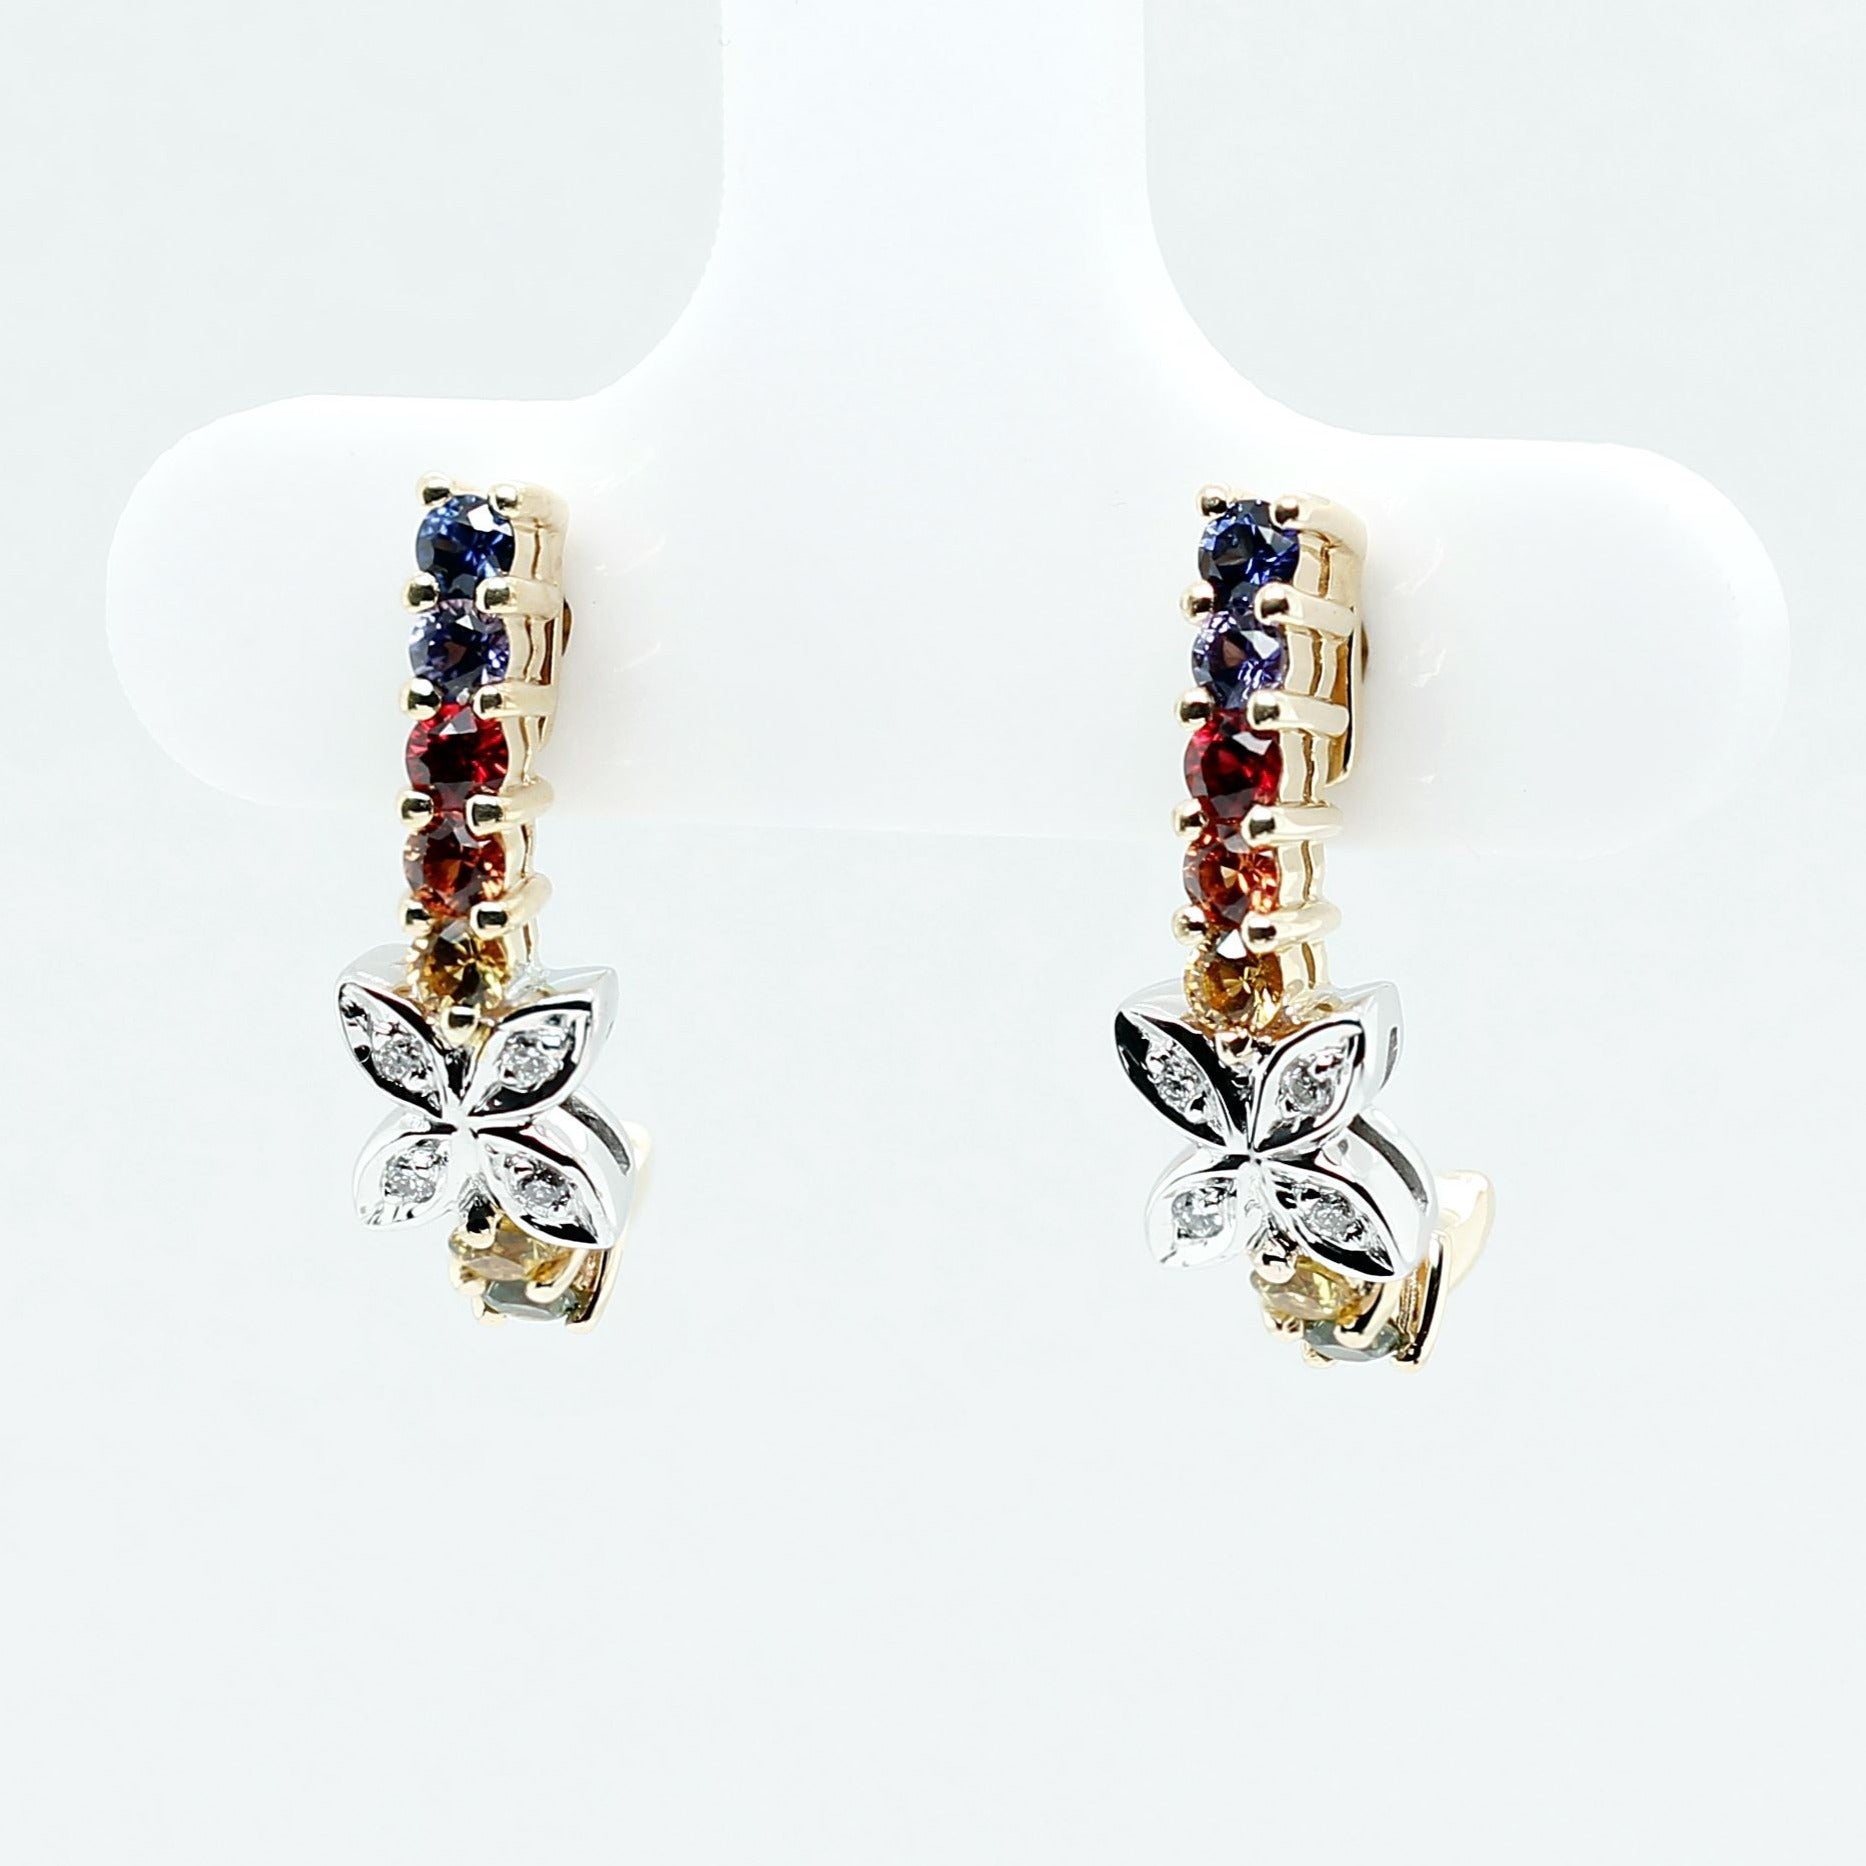 Four petals earrings with top-quality round brilliant cut natural sapphires, rubies and diamonds